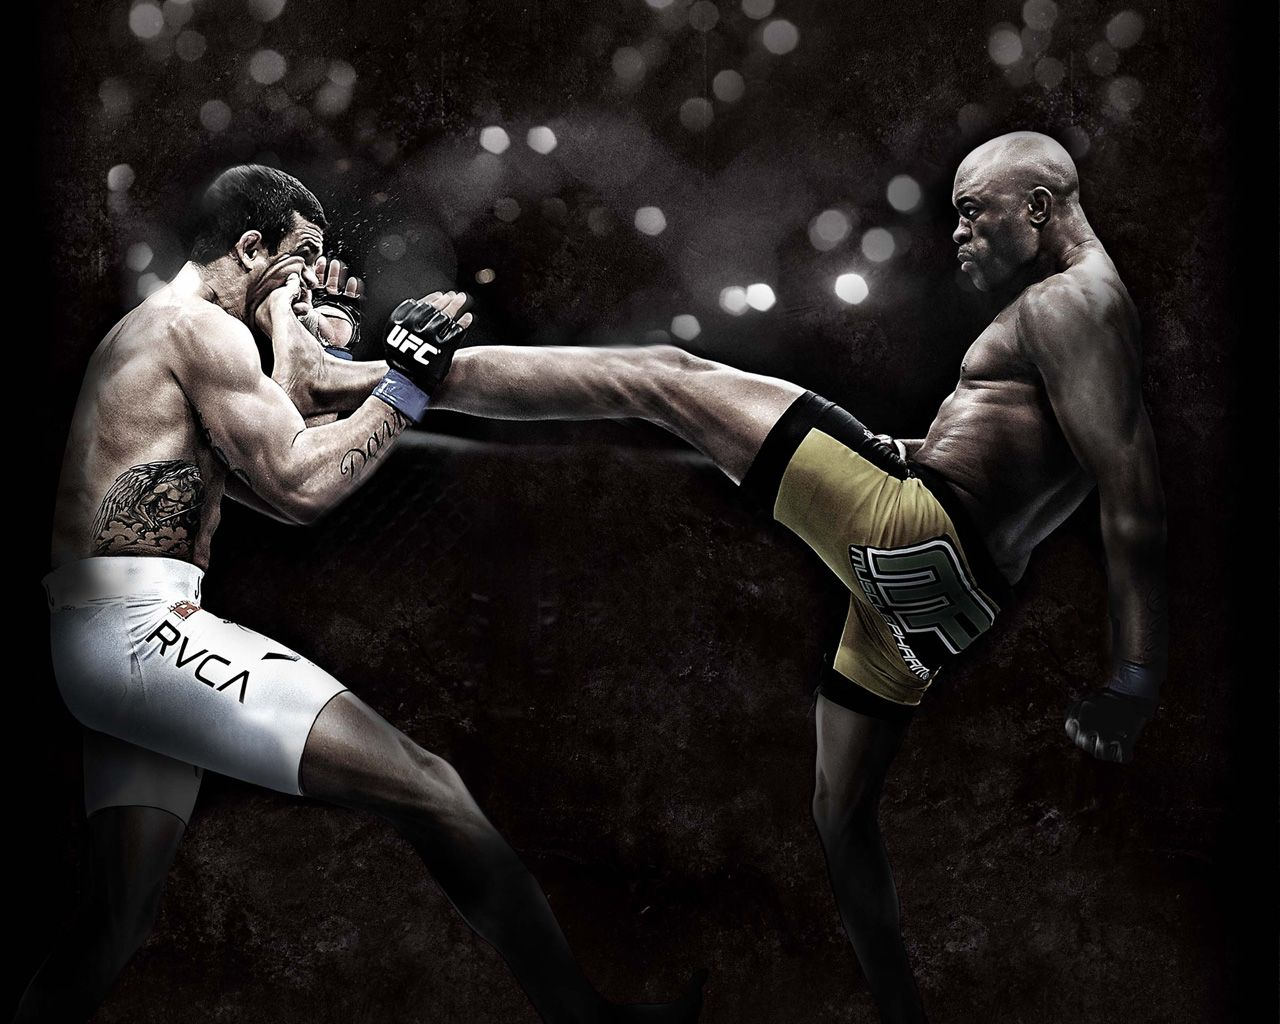 Ufc Wallpapers 1920×1200 Ufc Wallpaper (58 Wallpapers) | Adorable Wallpapers | Mma, Ufc fighters, Ufc